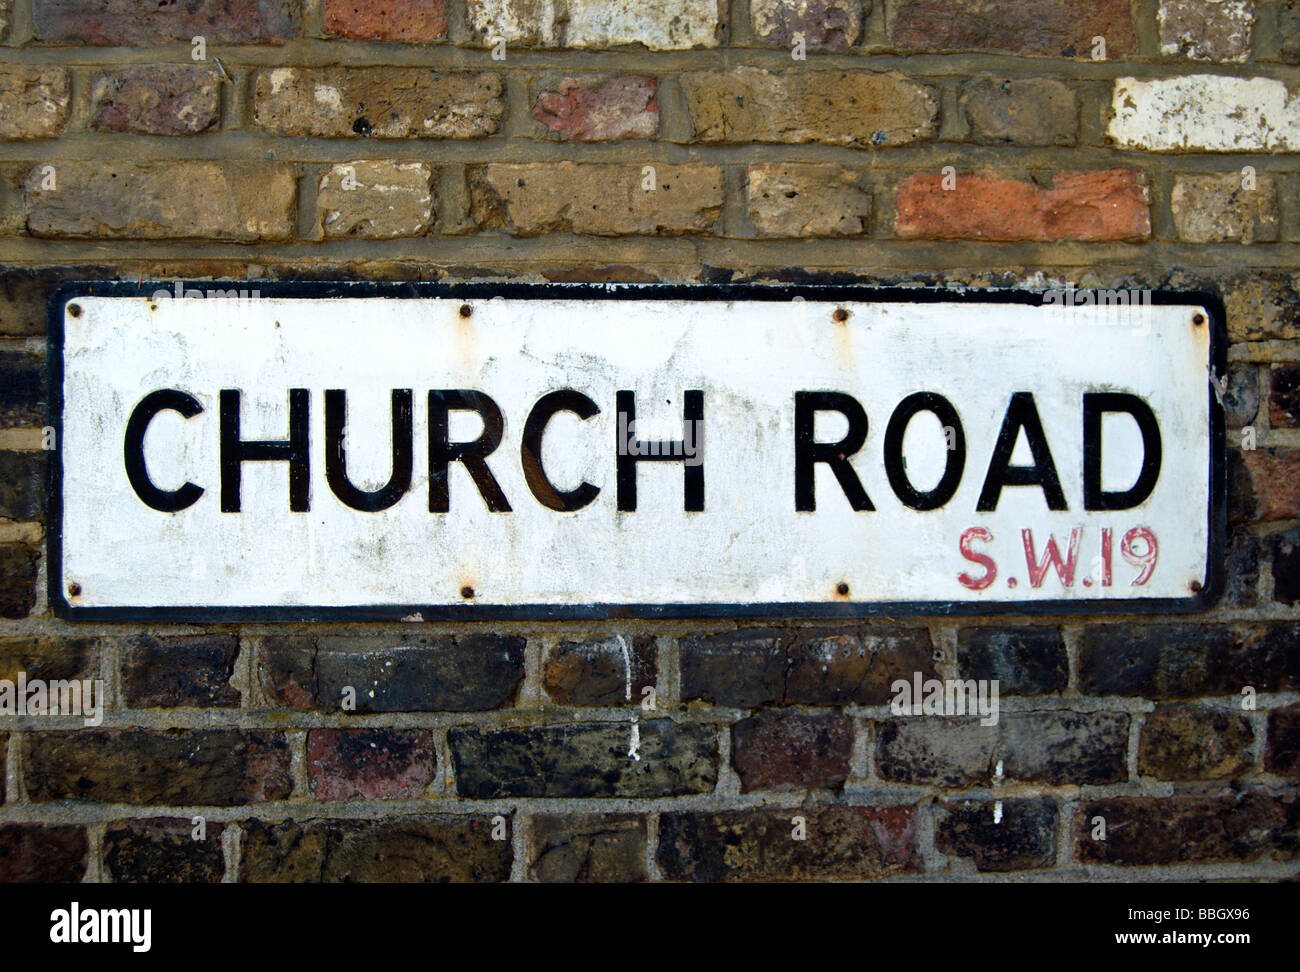 street name sign for church road, london SW19 - Stock Image